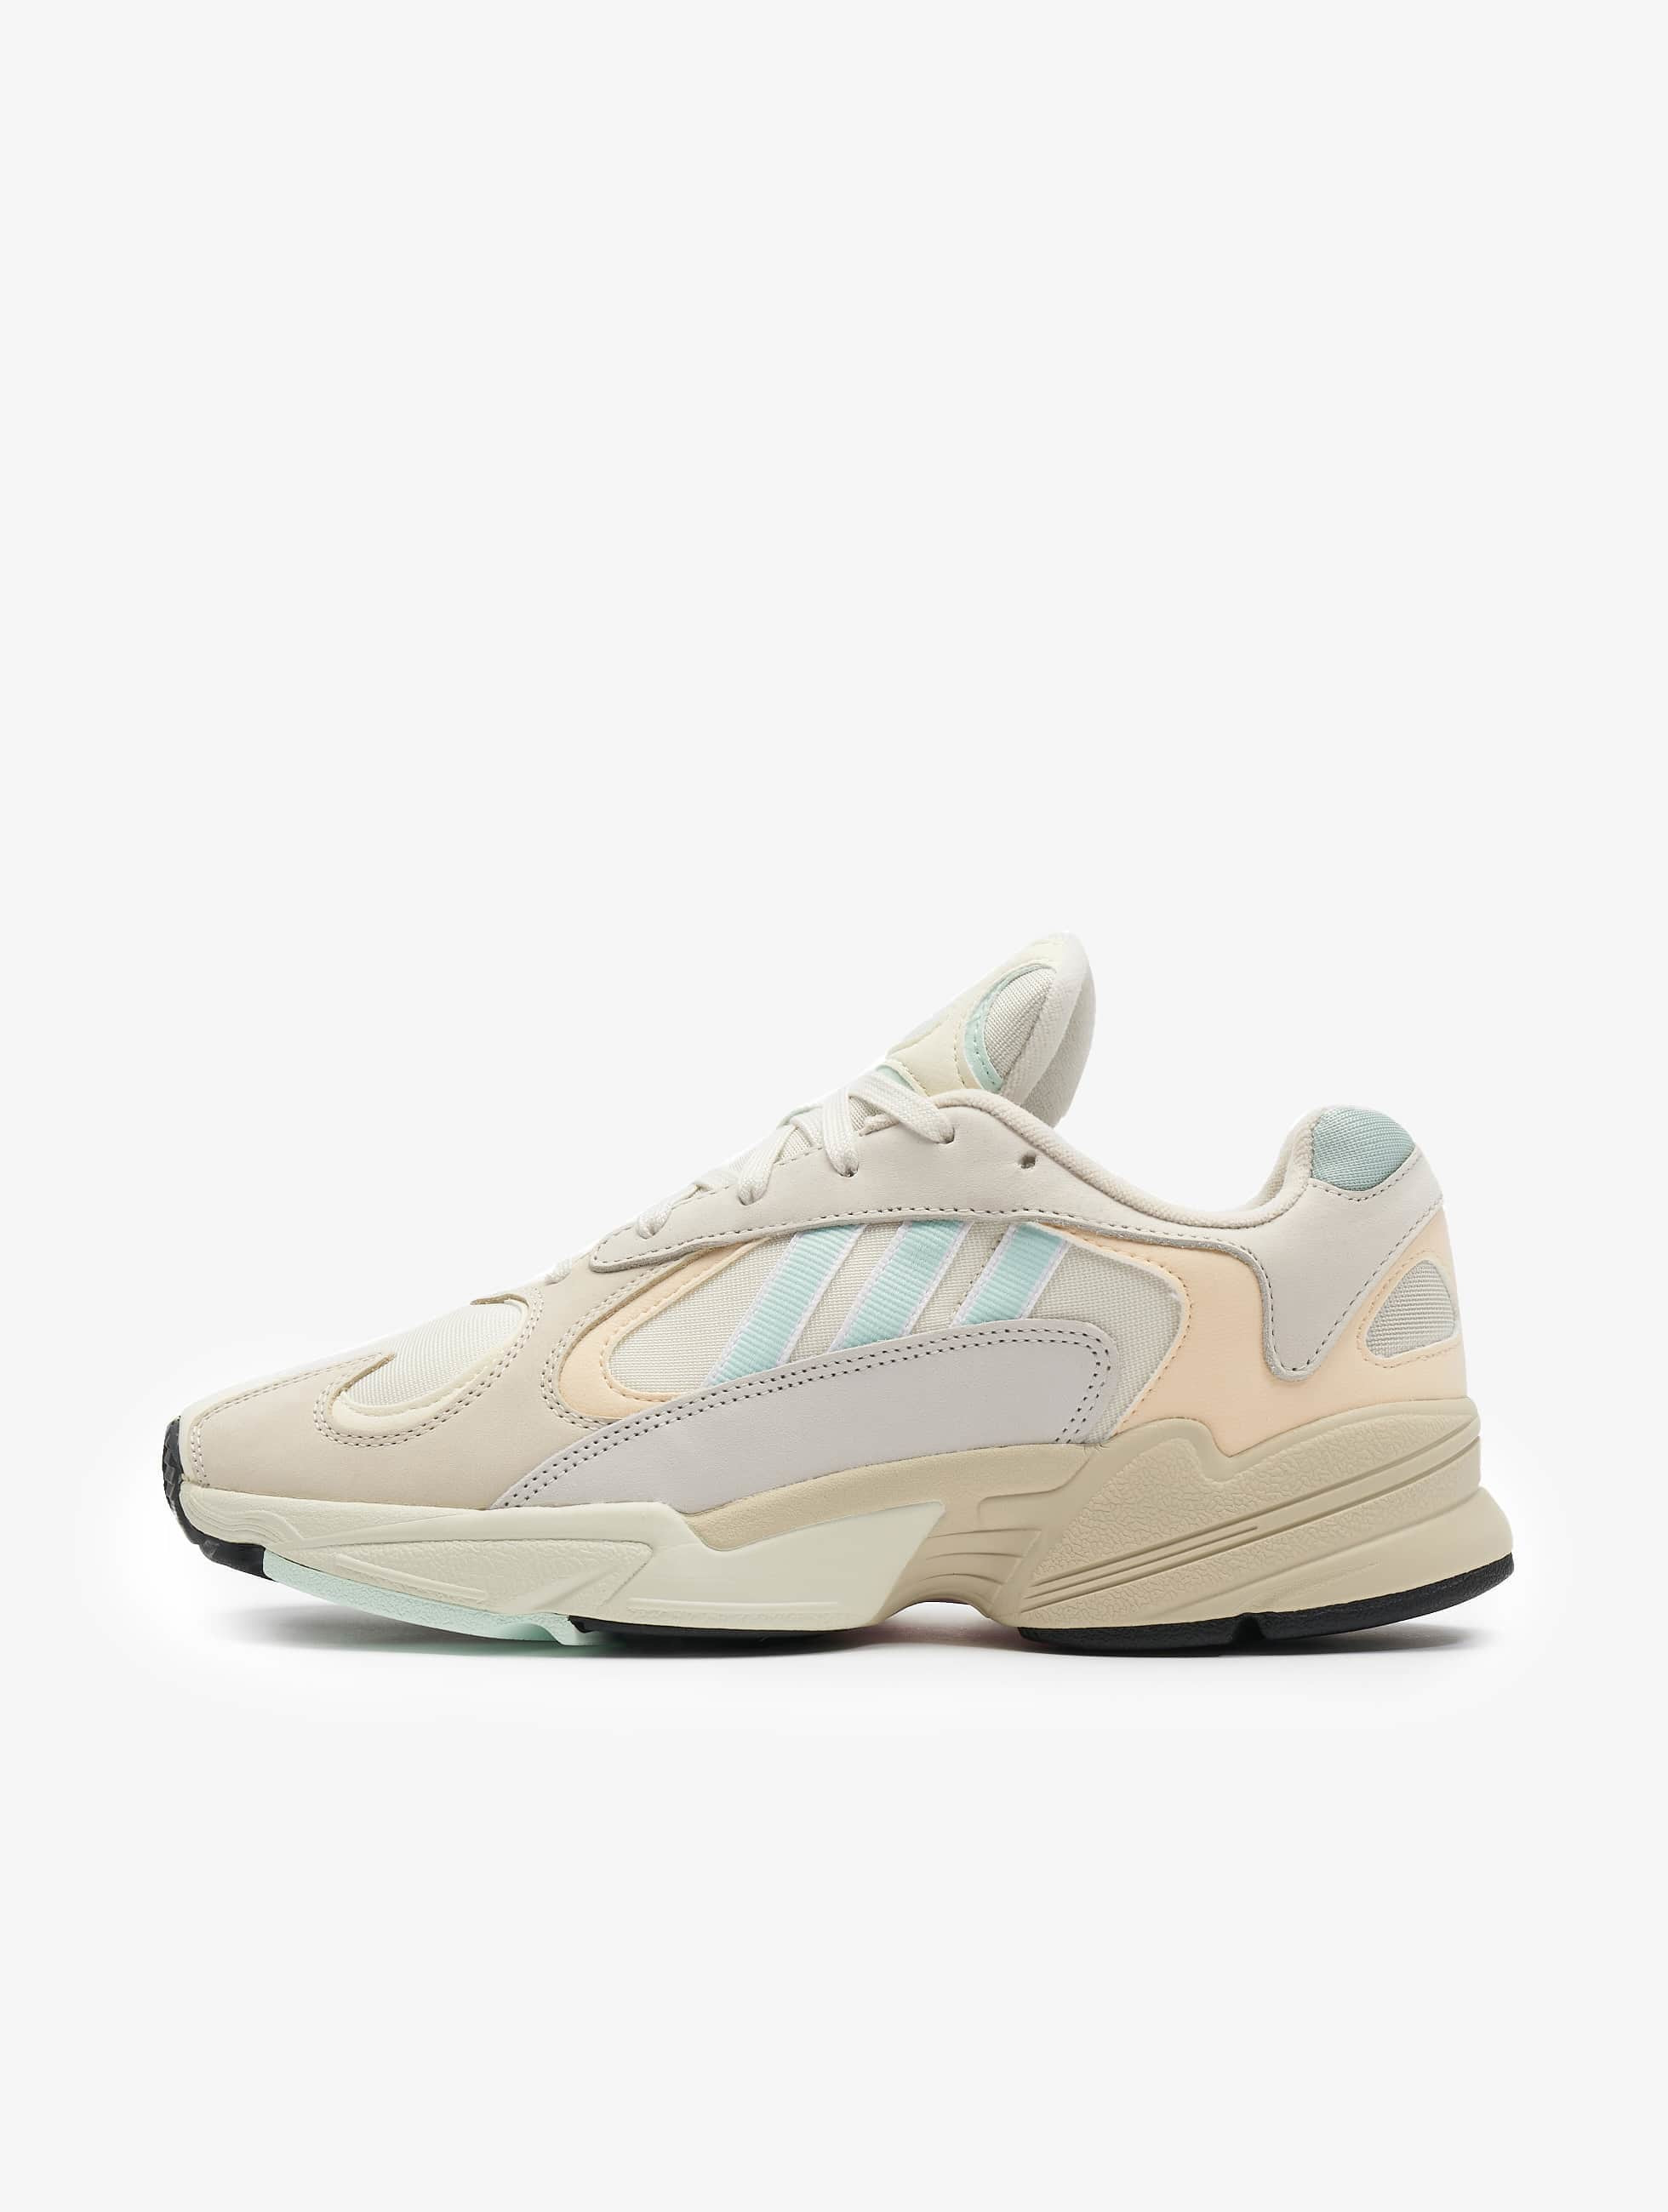 Adidas Originals Yung 1 Sneakers Off WhiteIce MintEcrtin